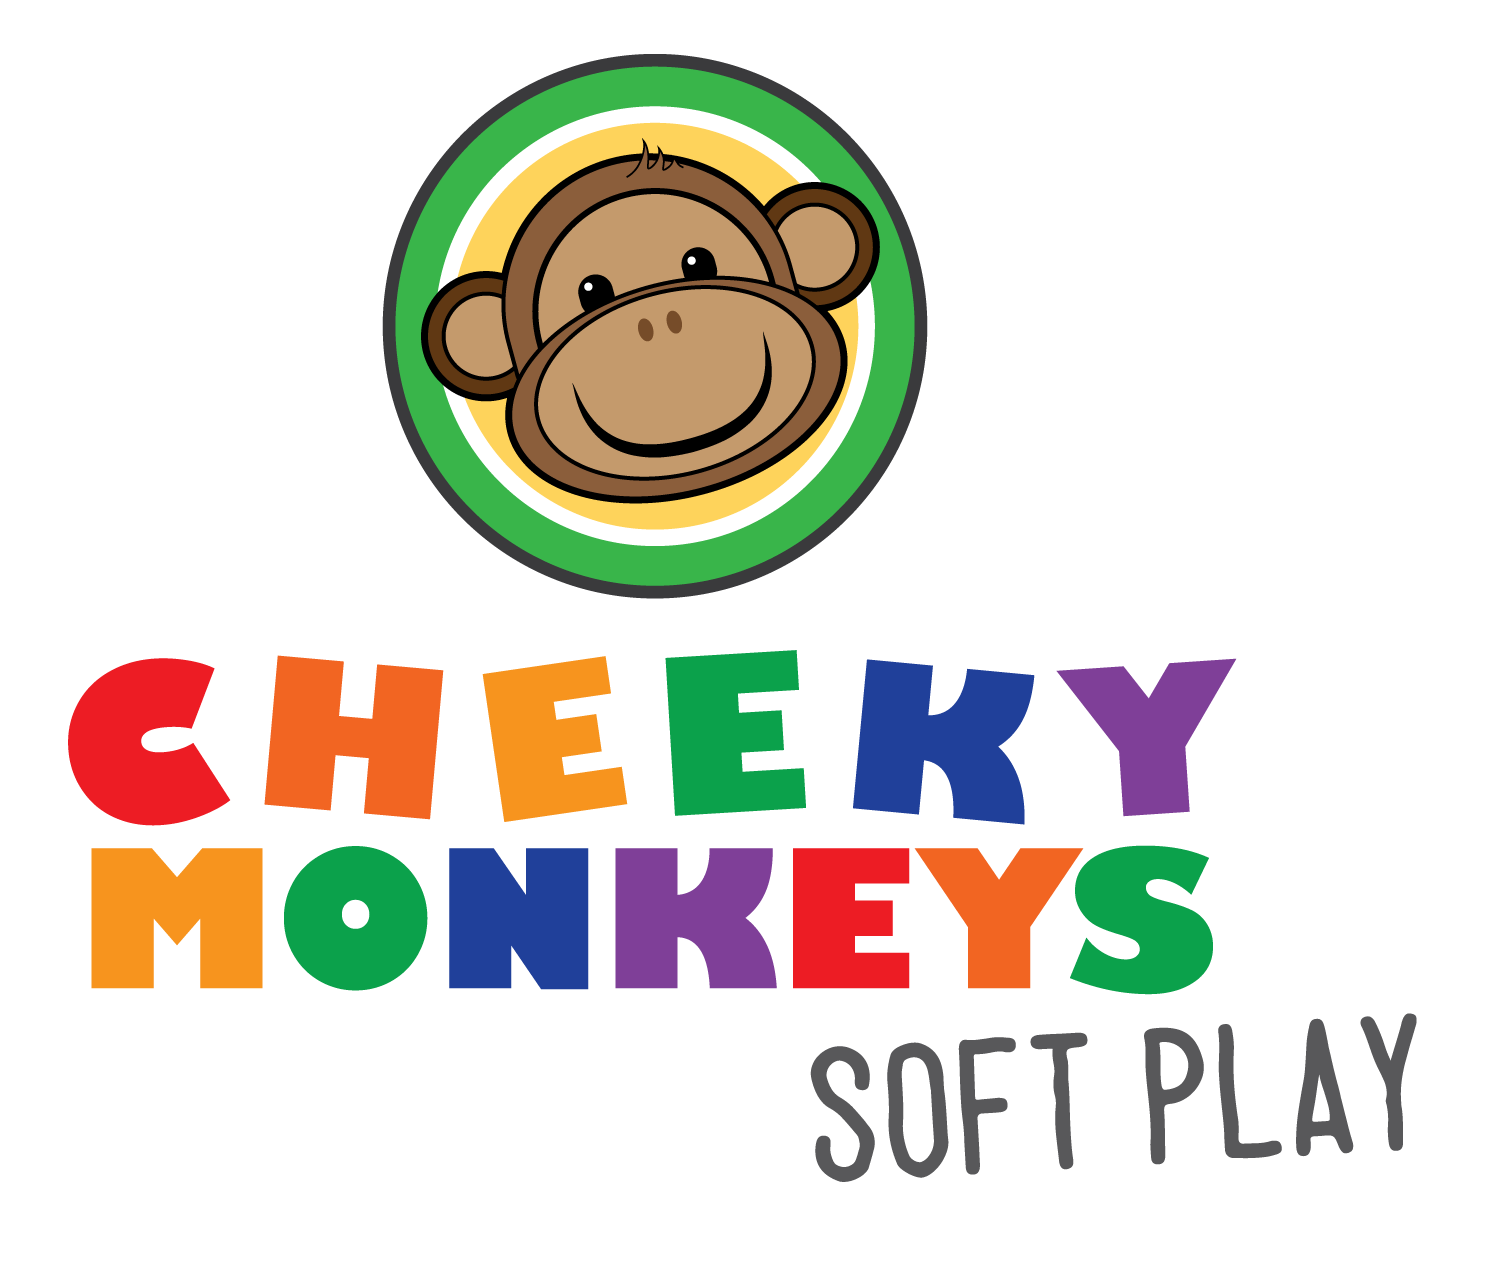 Cheeky Monkeys Soft Play